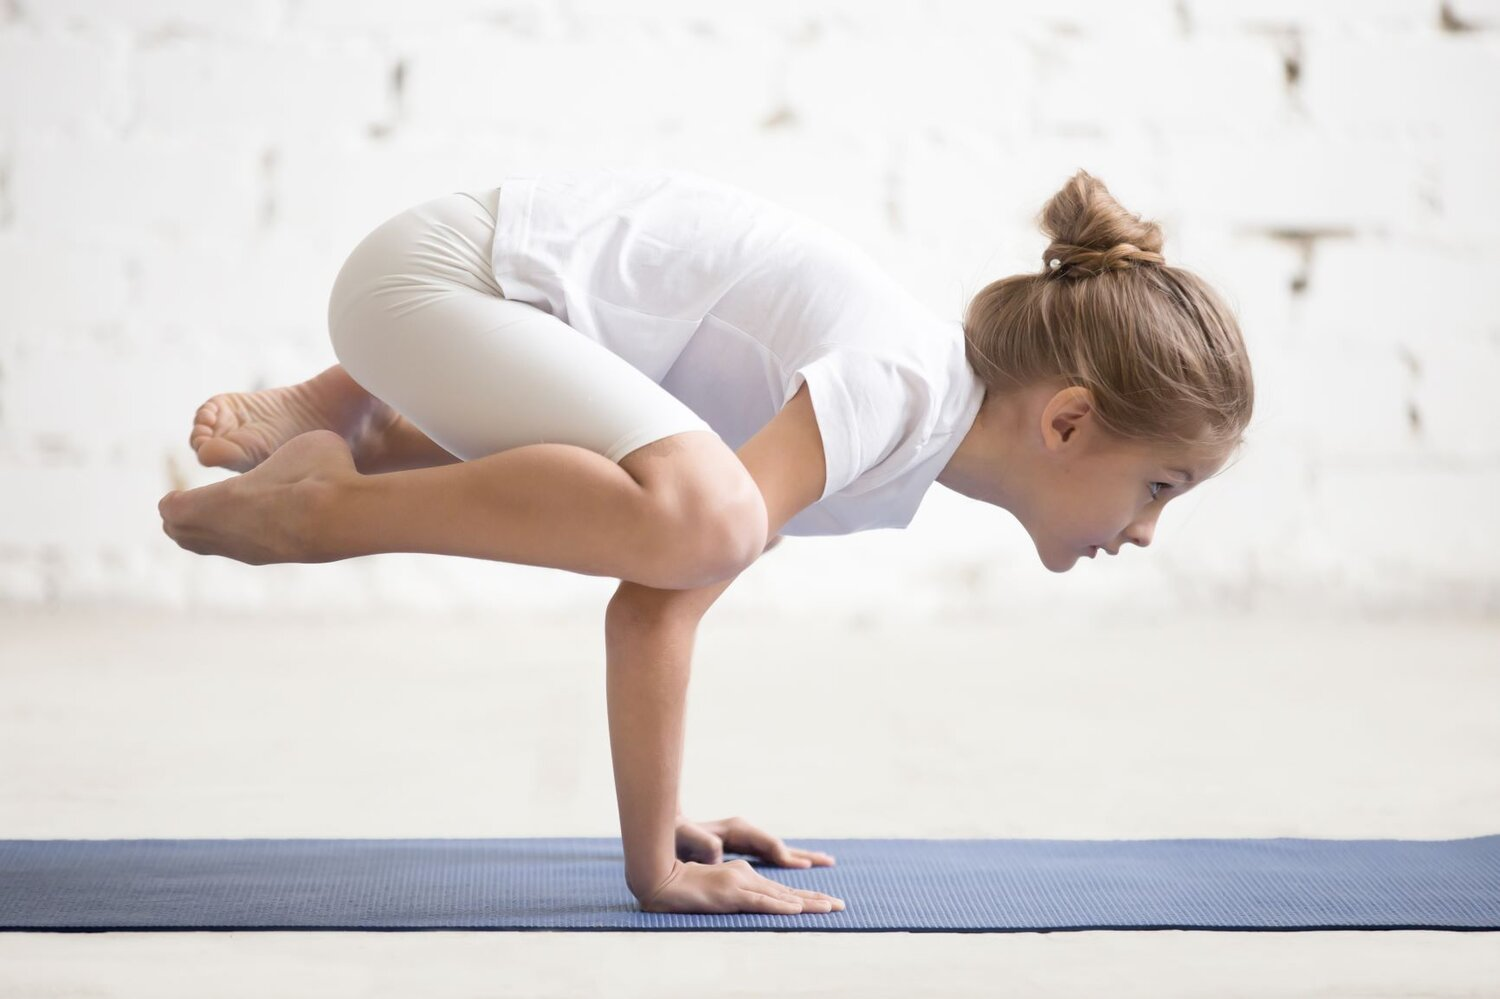 Yoga is beneficial for people of every age, and everyone can benefit from yoga's healing powers. Research shows that about 400,000 children in the USA